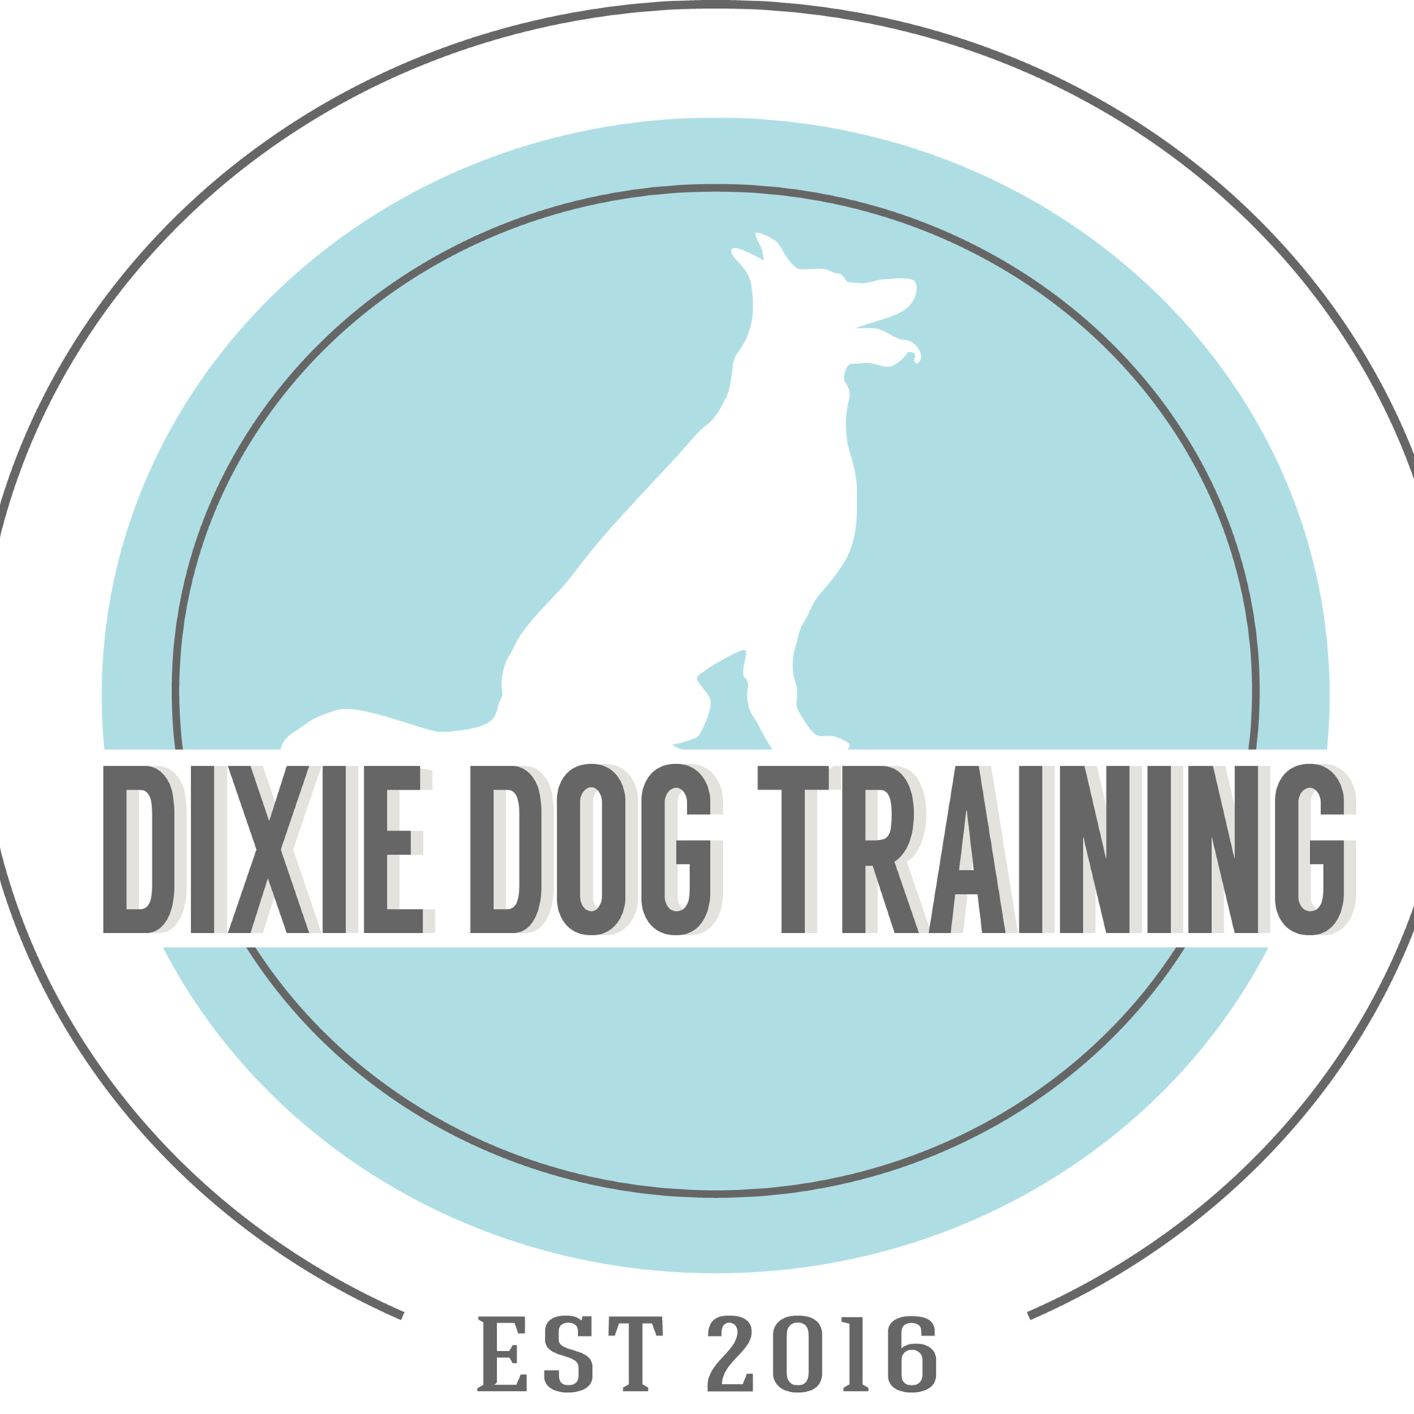 Dixie Dog Training primary image